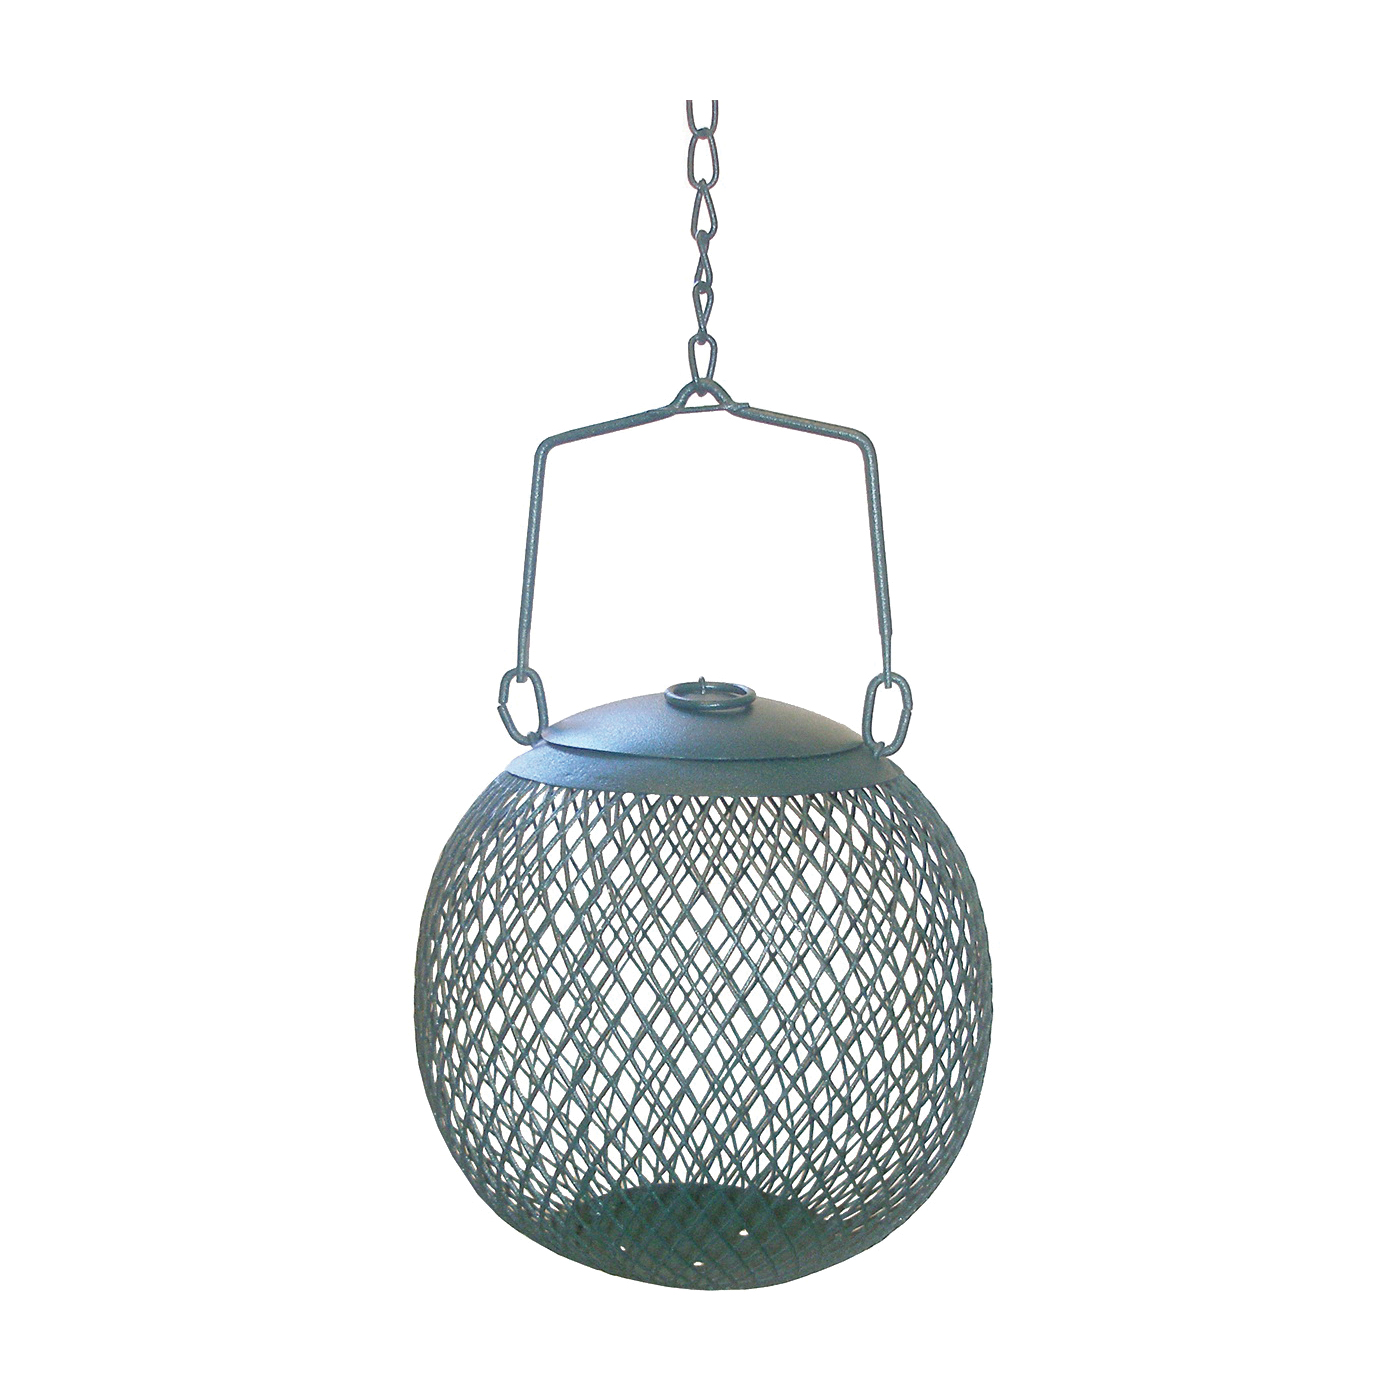 Picture of Perky-Pet NO/NO GSB00344 Wild Bird Feeder, 1.12 lb, Metal, Green, 5.7 in H